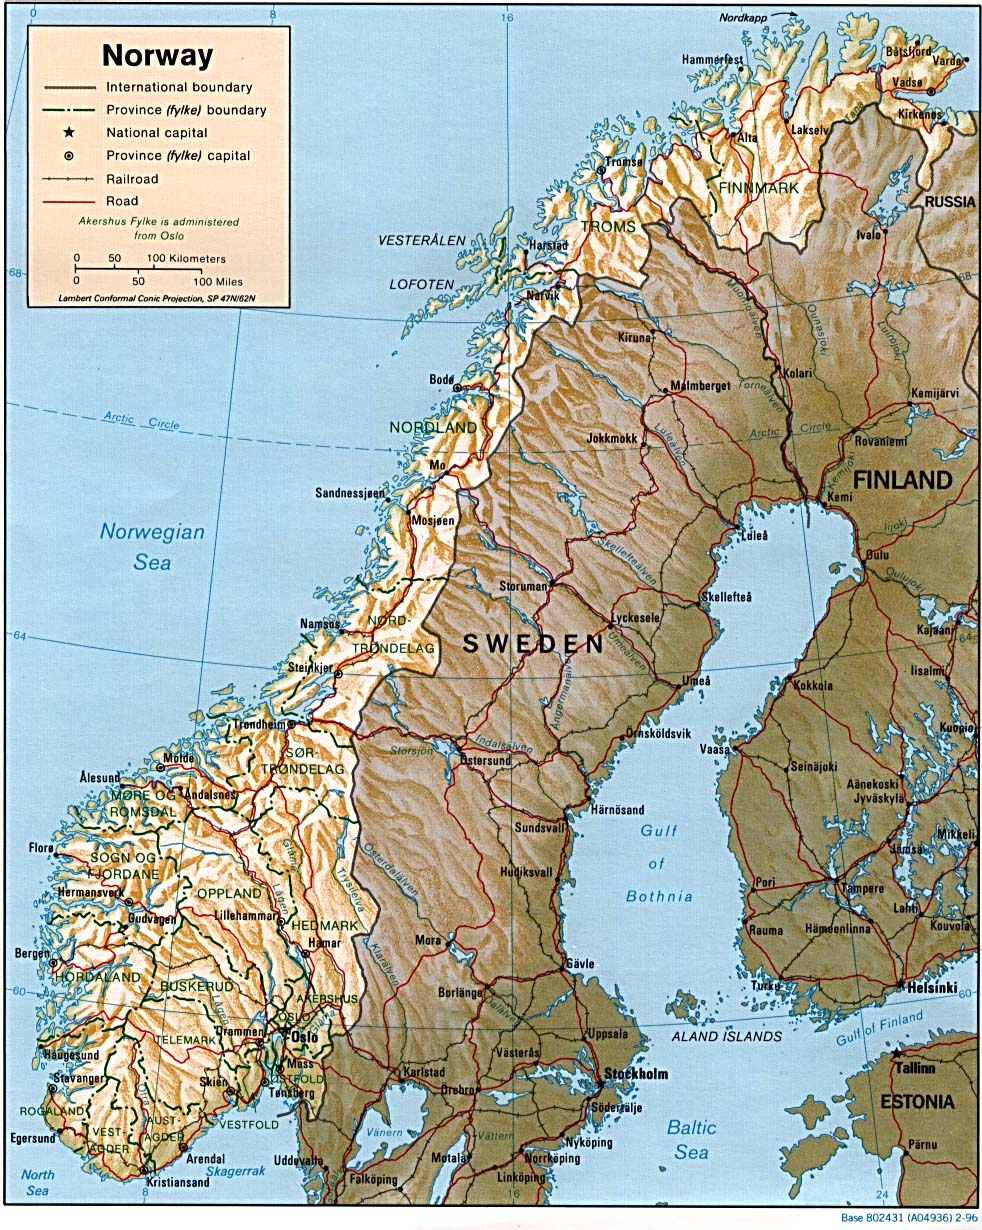 Norway On Map Of Europe.Norway Maps Perry Castaneda Map Collection Ut Library Online